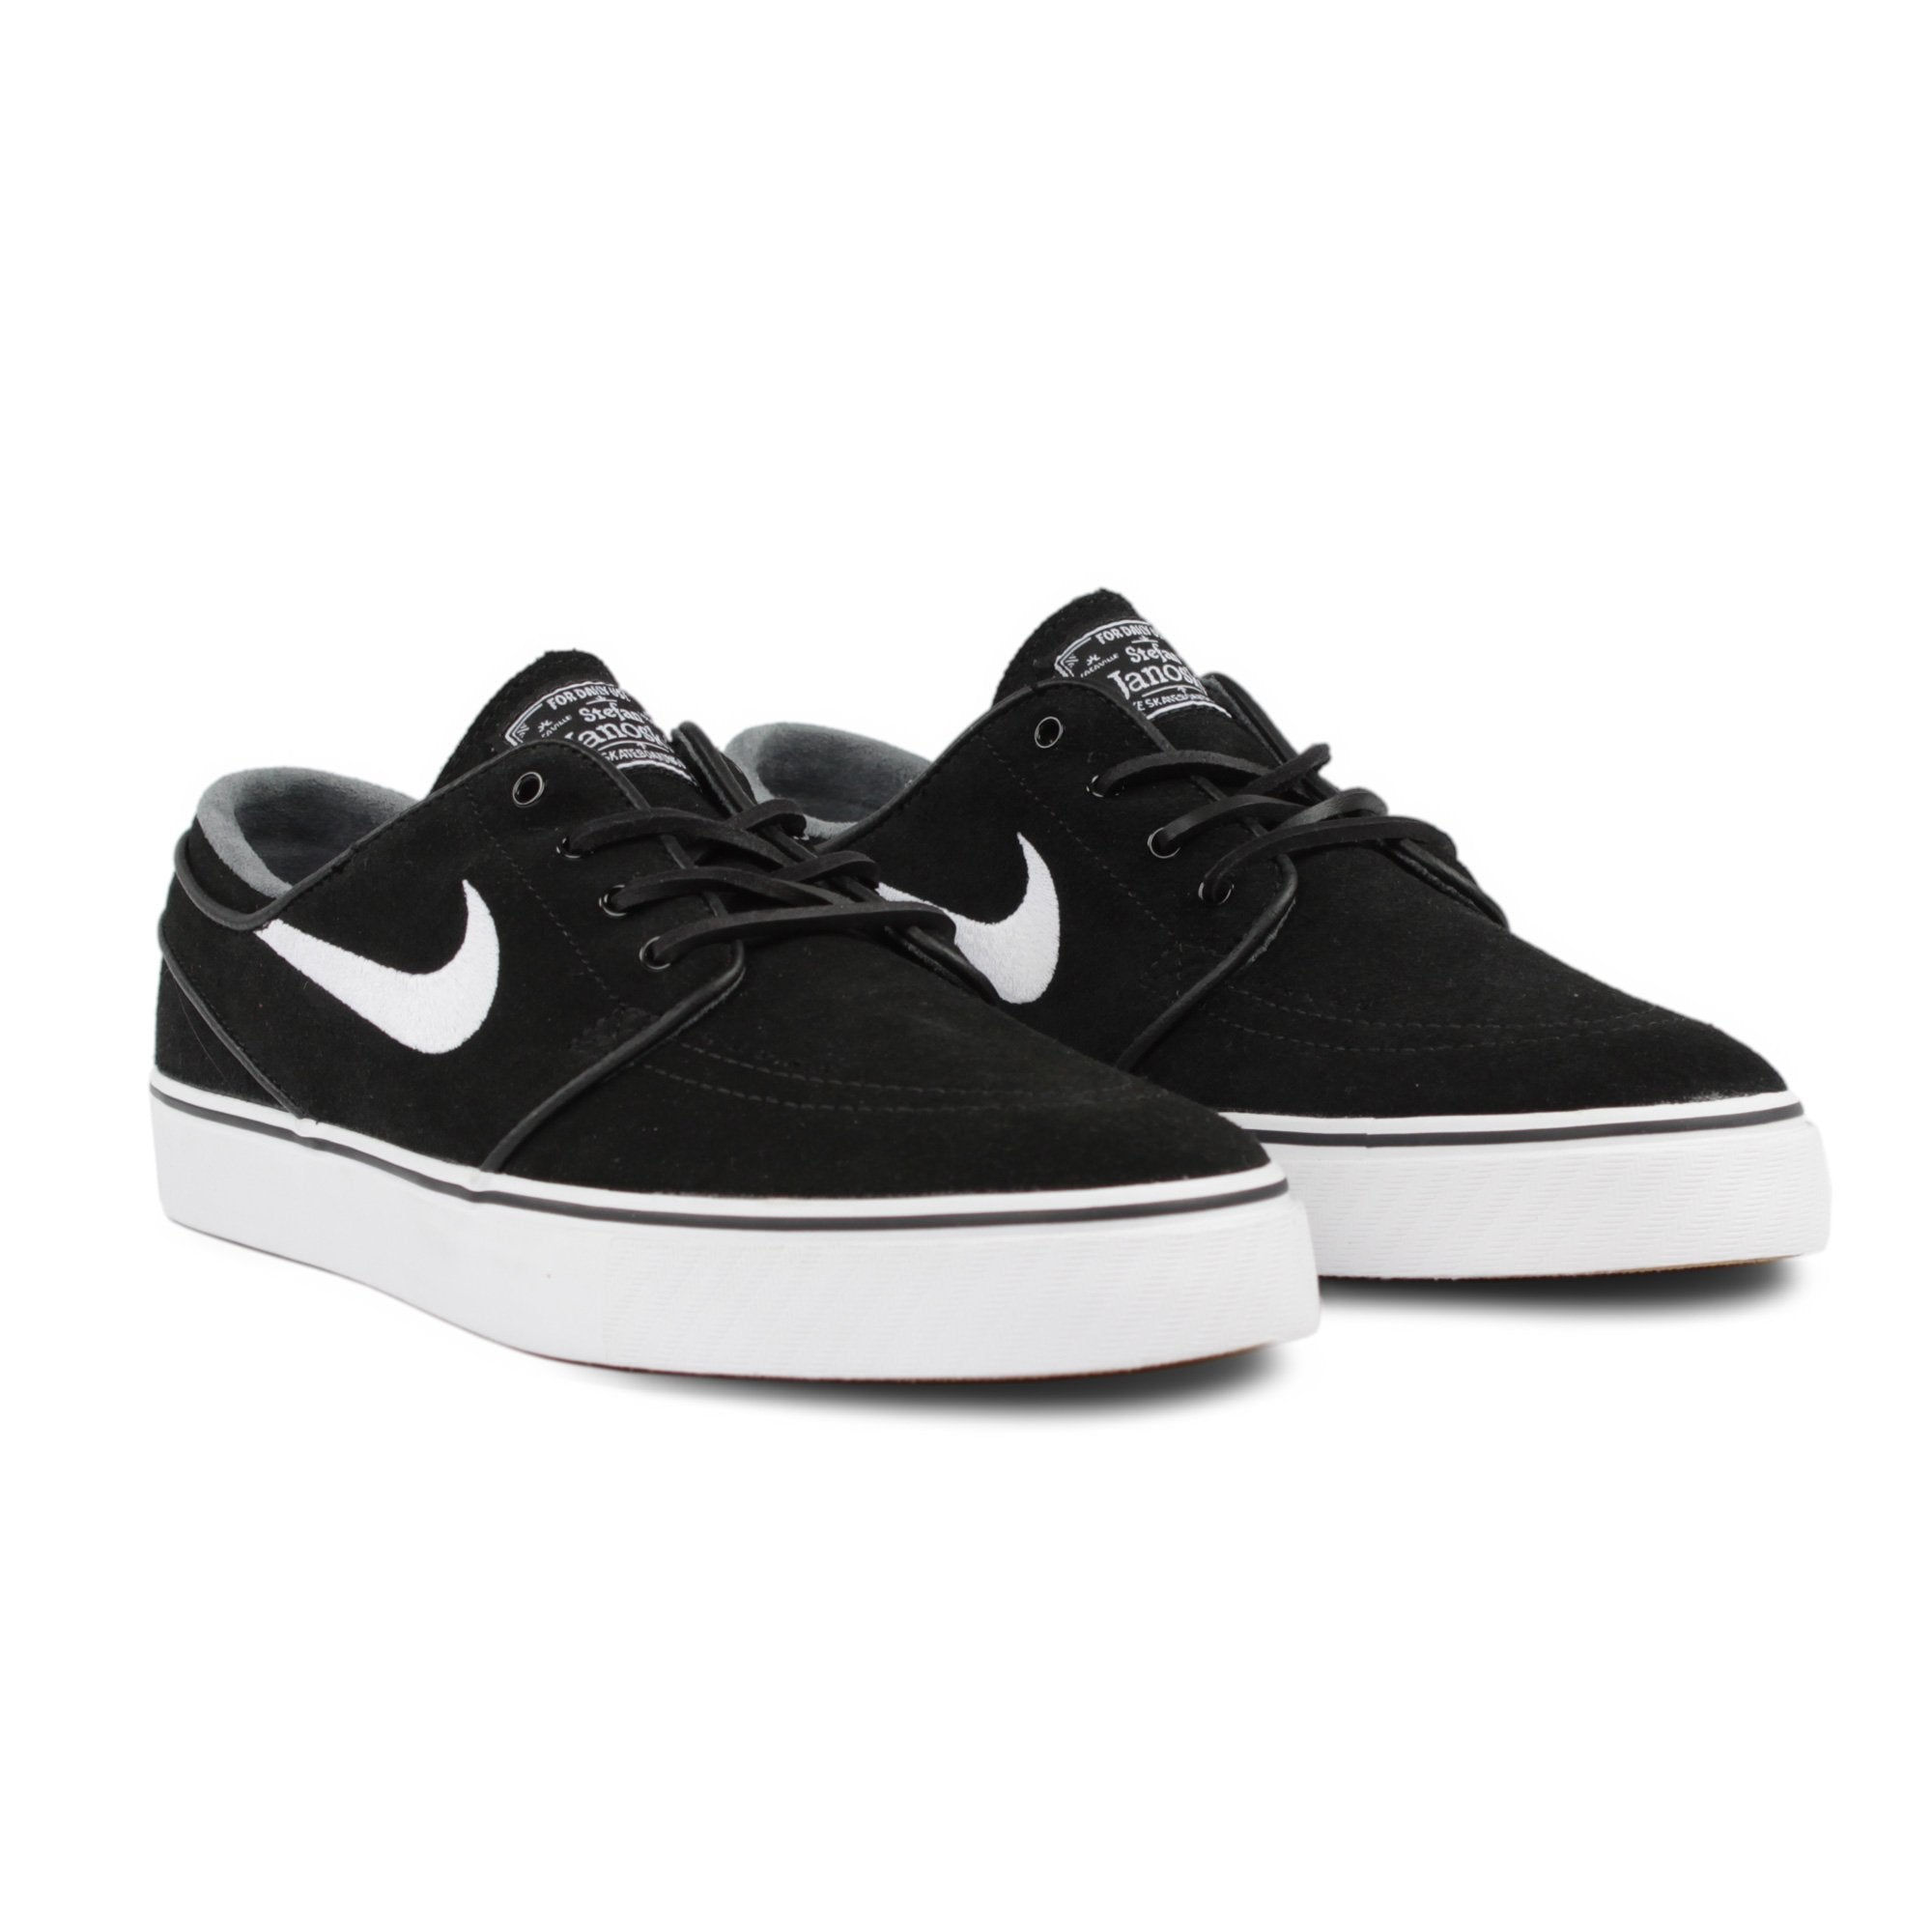 Nike SB Janoski OG Product Photo #2